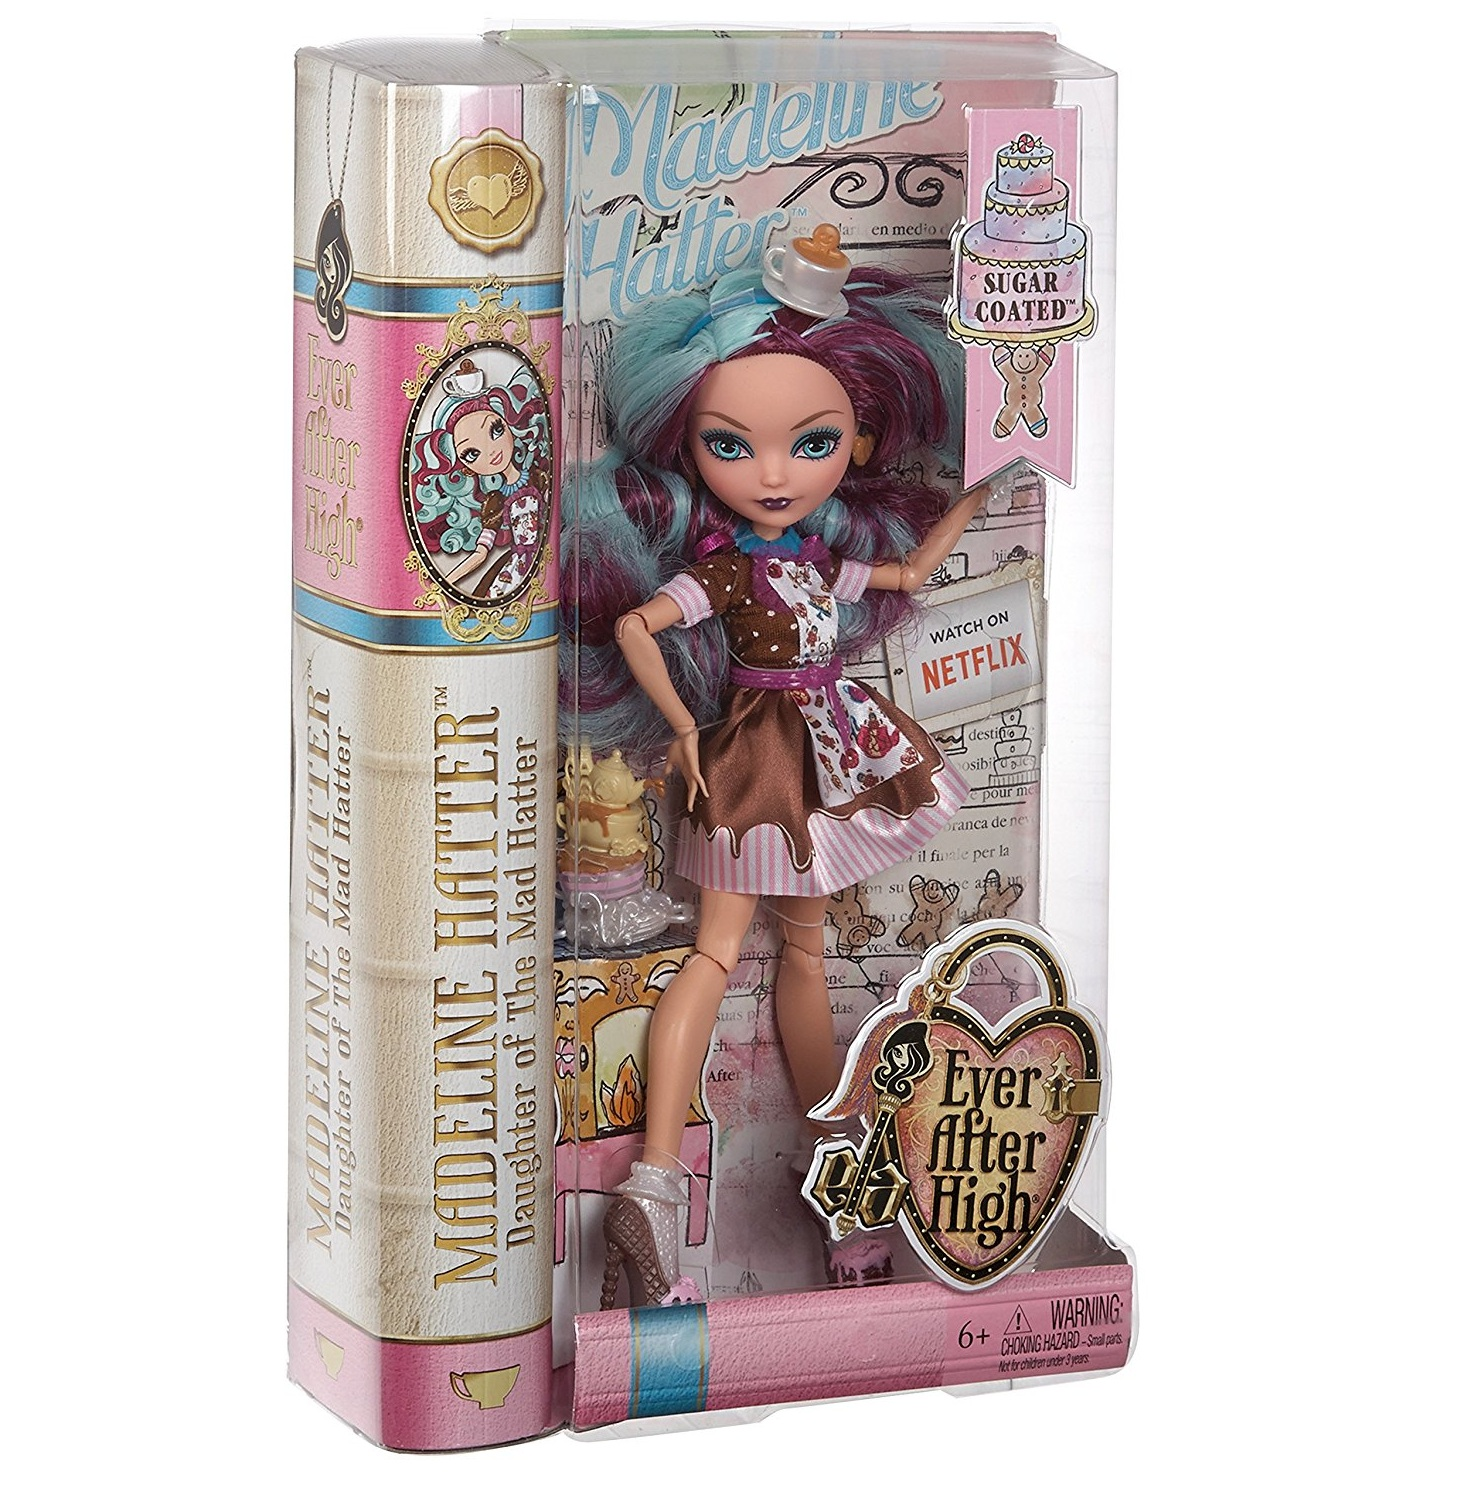 Công chúa hậu duệ Madeline trong chiếc tạp dề Ever After High Sugar Coated Madeline Hatter Doll